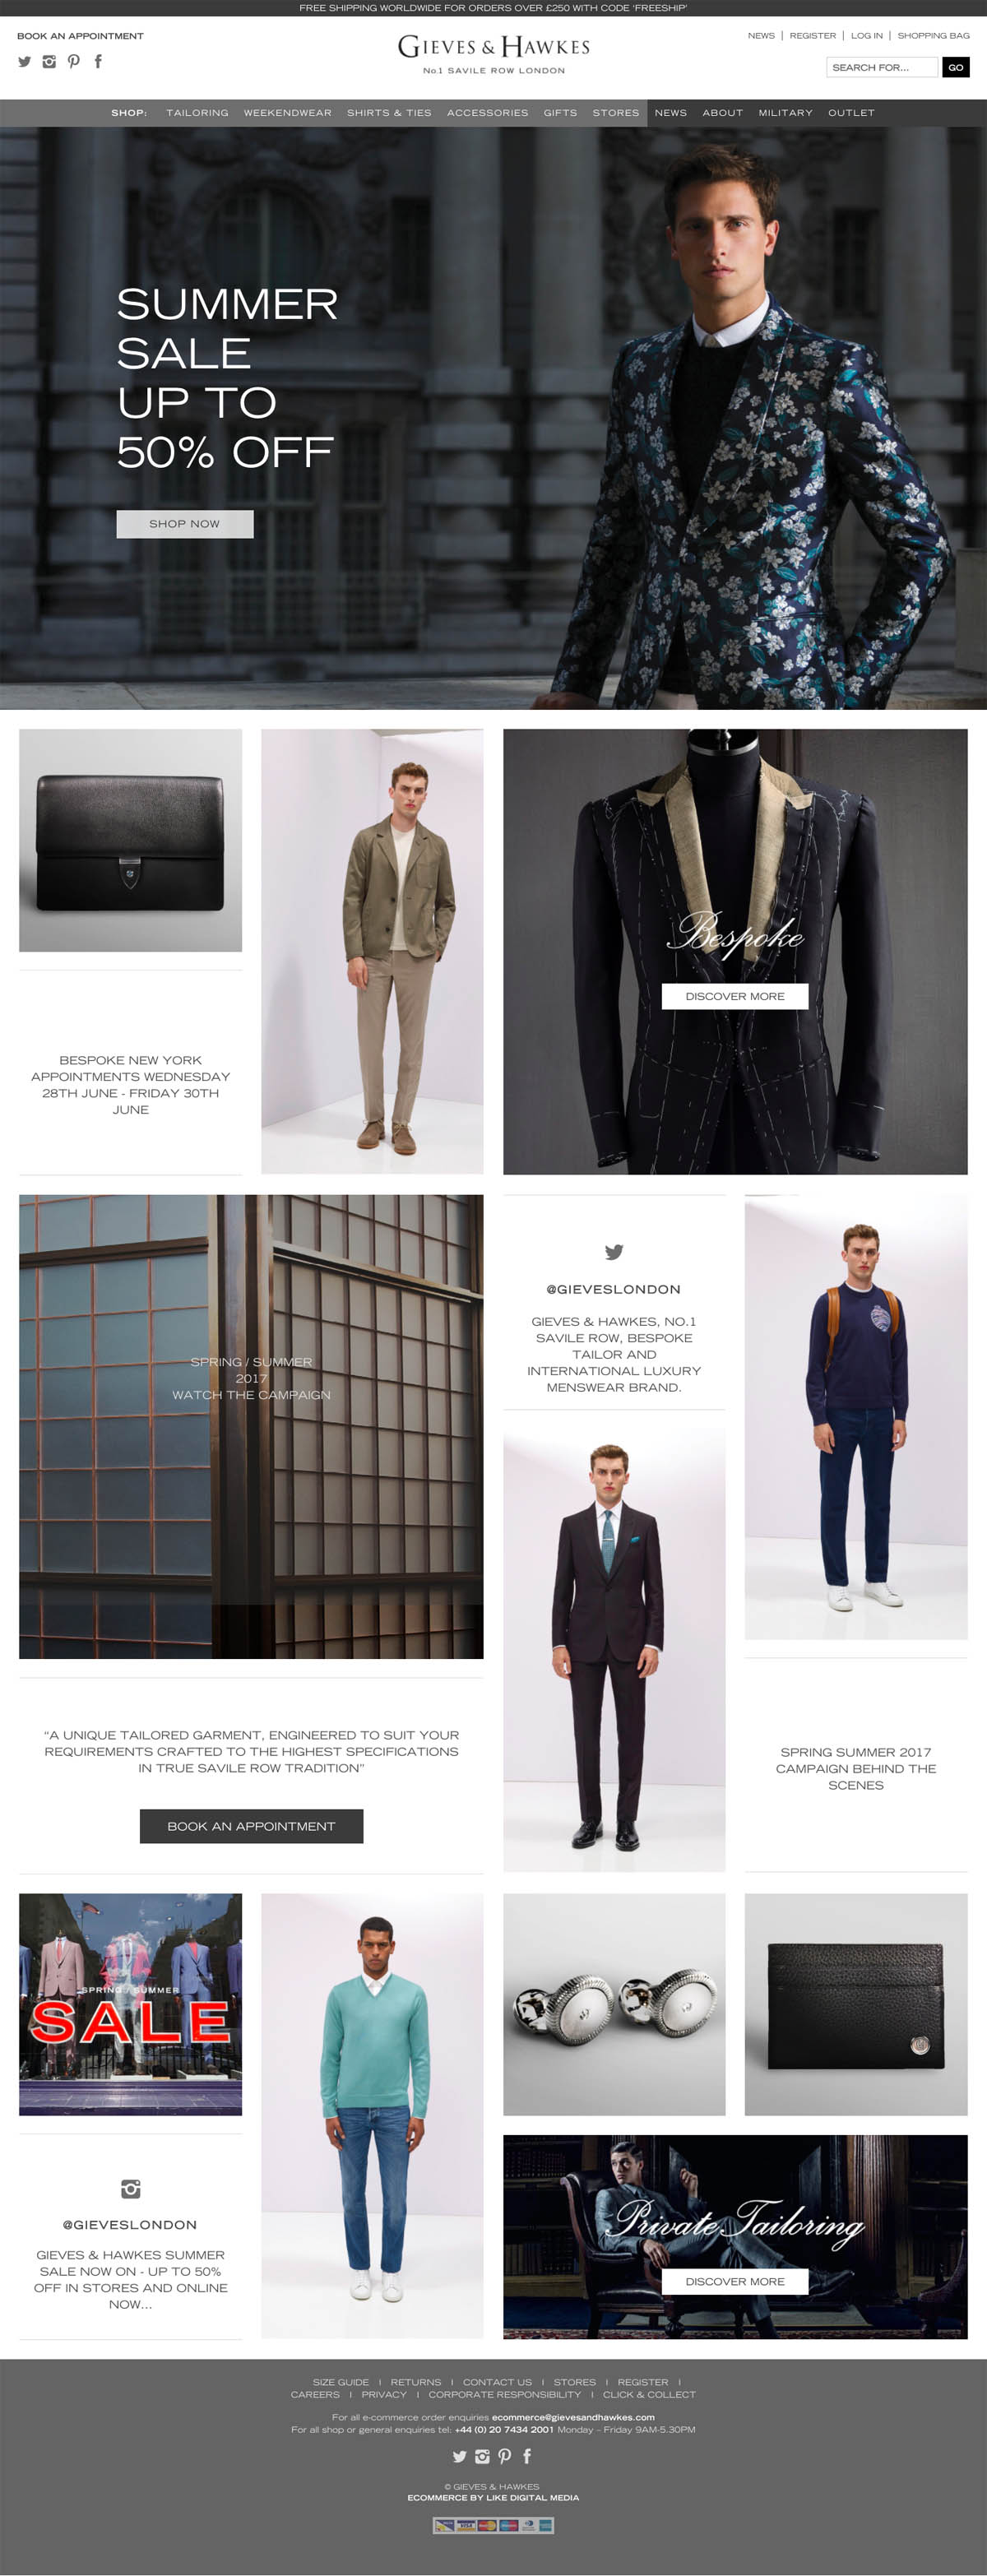 eCommerce website: Gieves & Hawkes